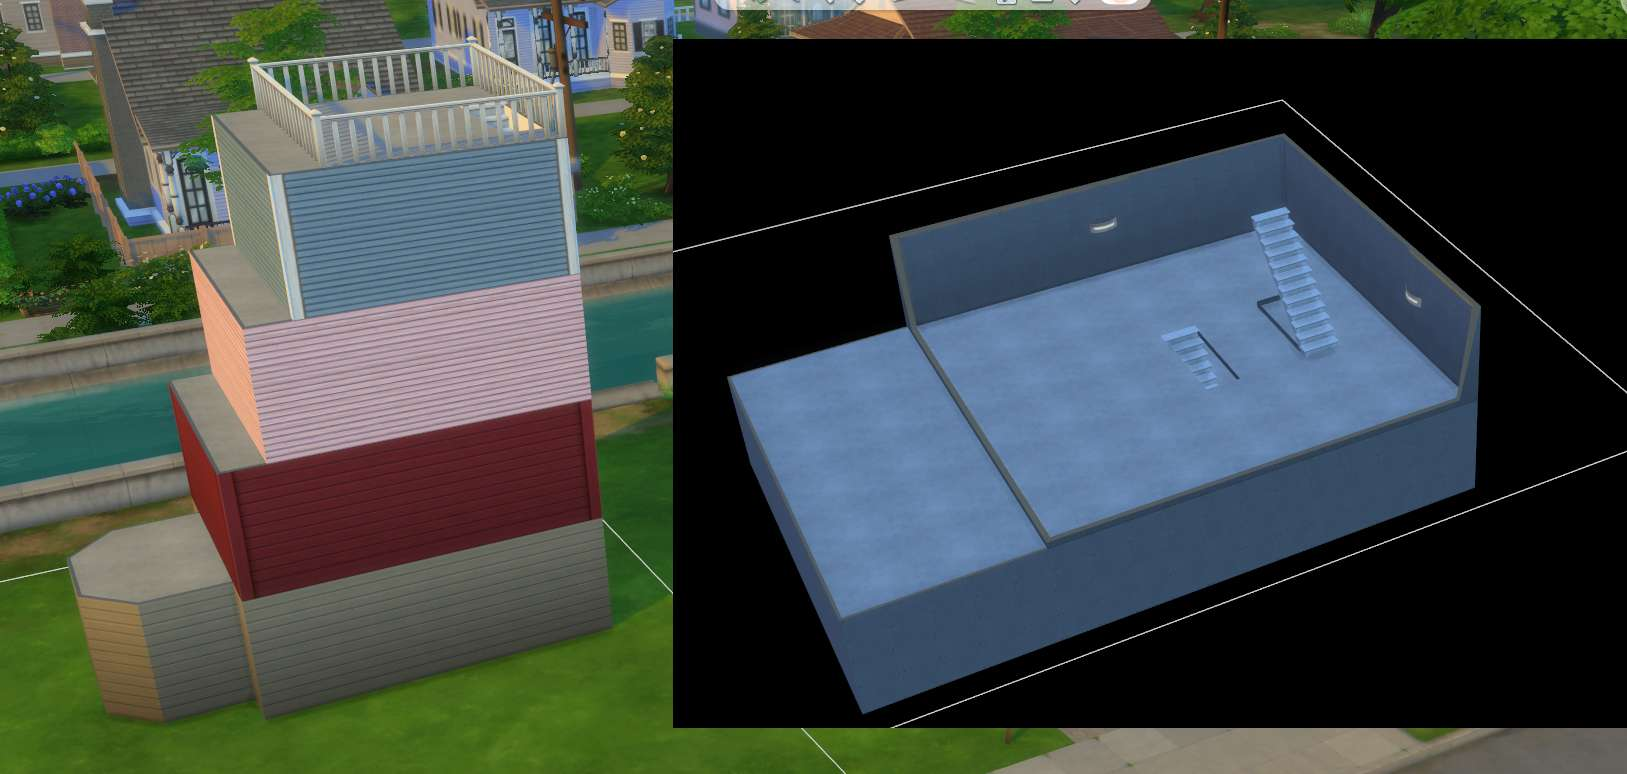 The Sims 4 Building: Stairs and Basements